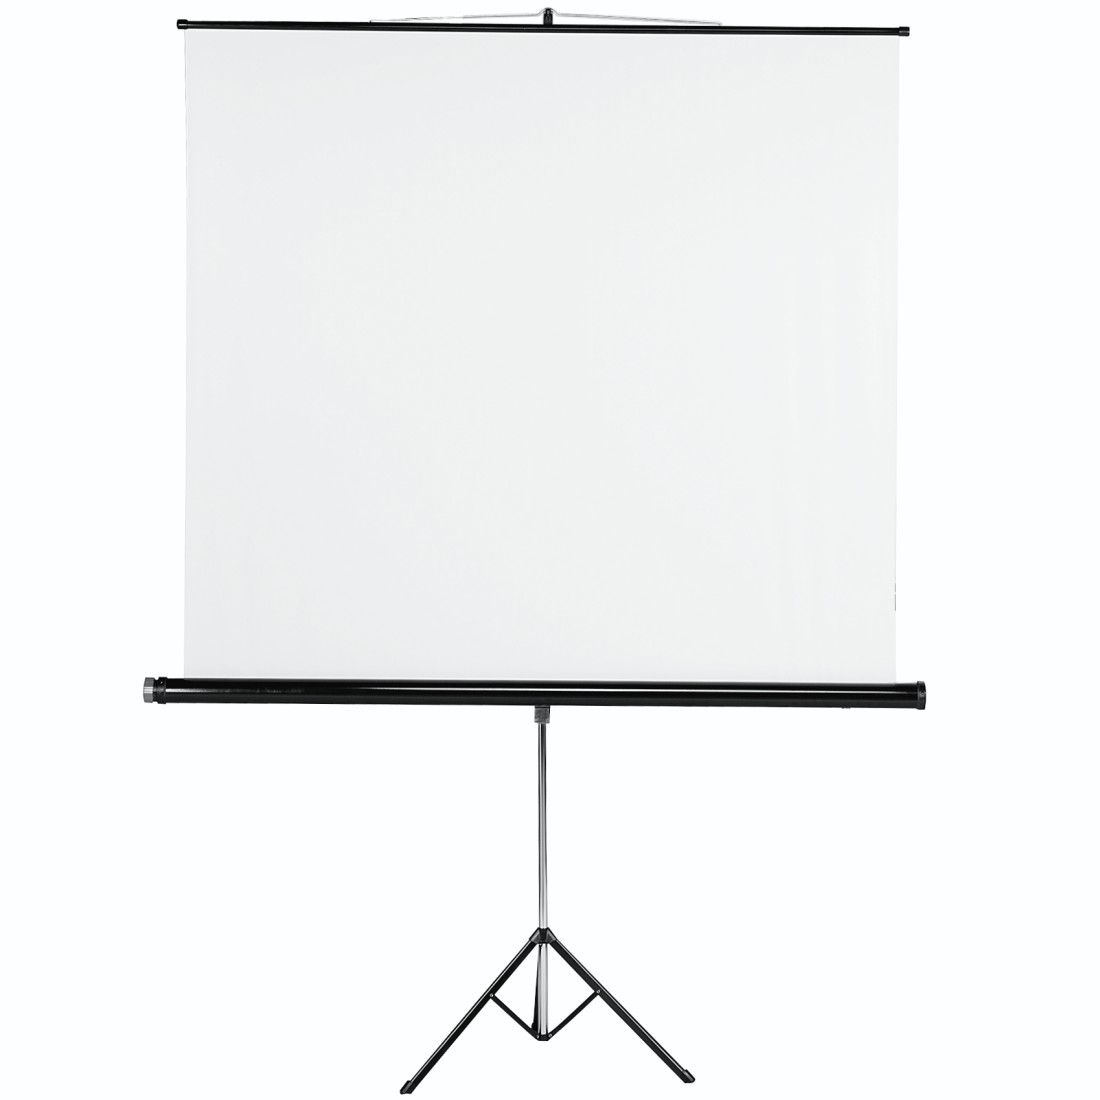 Gain Ecran De Projection 00018793 hama tripod projection screen, 155 x 155 cm, white